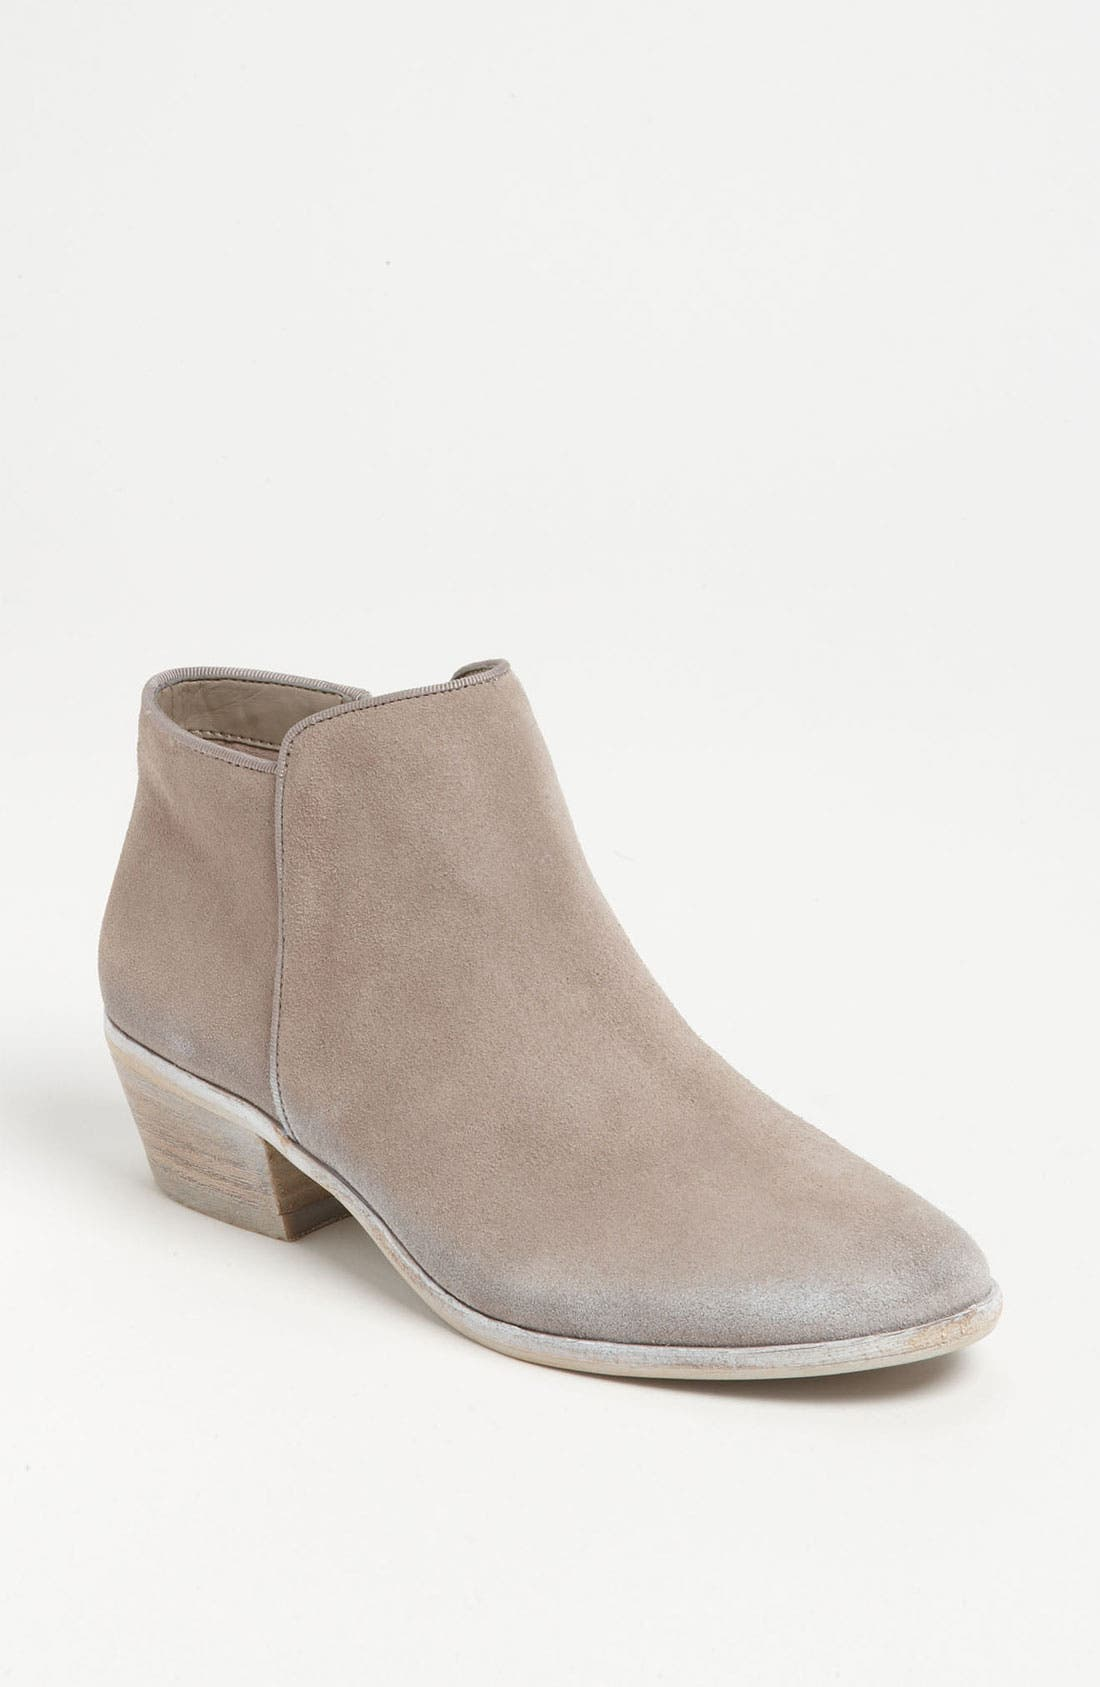 Alternate Image 1 Selected - Sam Edelman 'Petty' Bootie